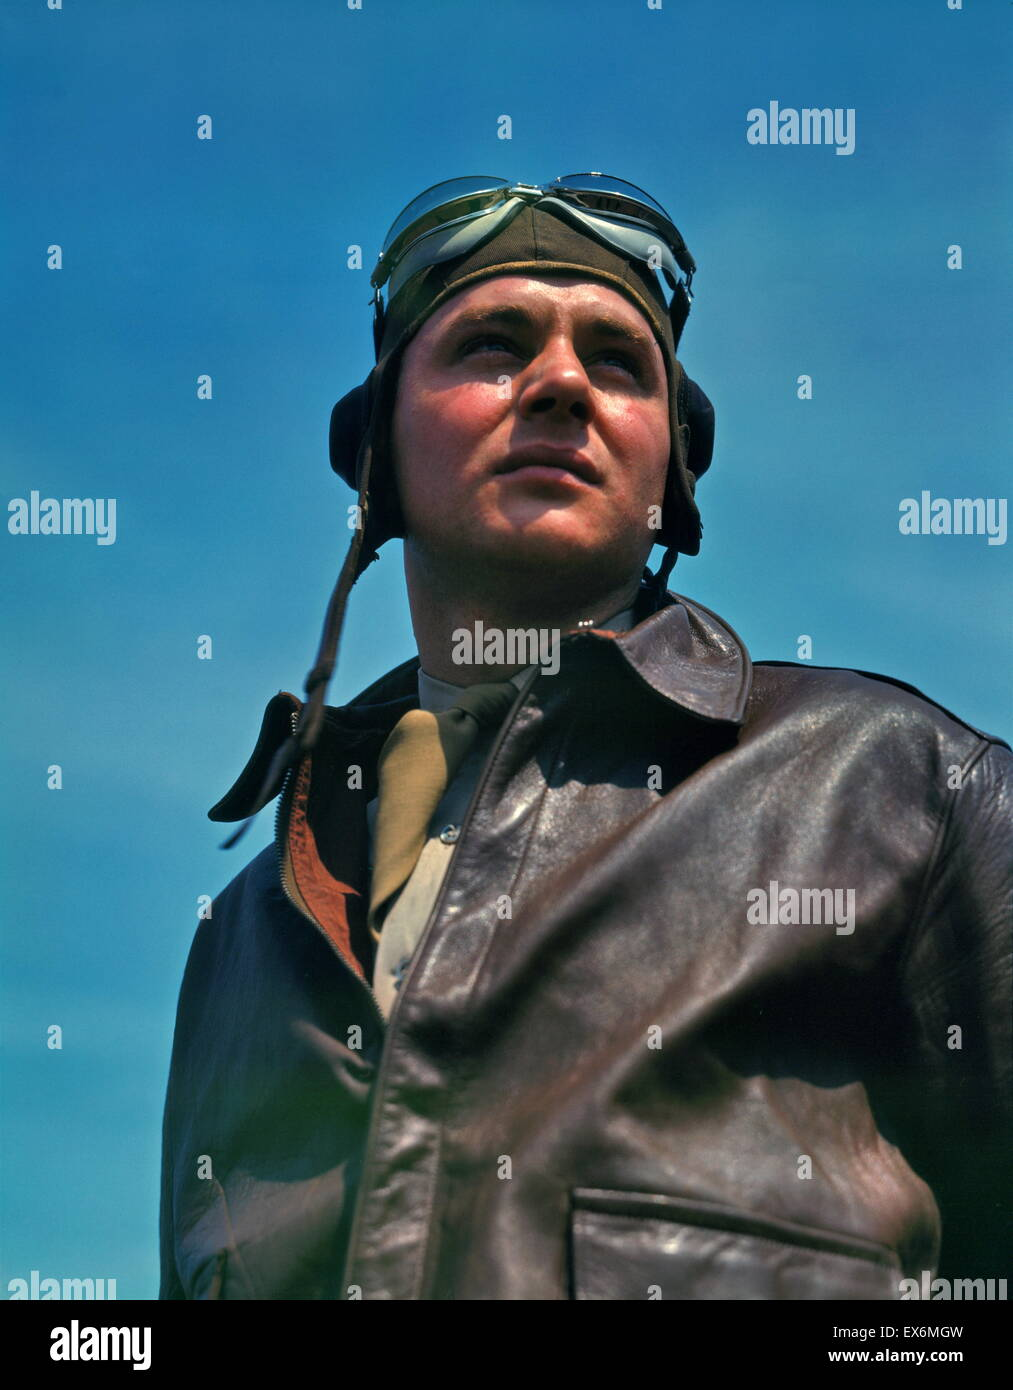 Portrait of an American YB-17 bomber pilot, May 1942 - Stock Image